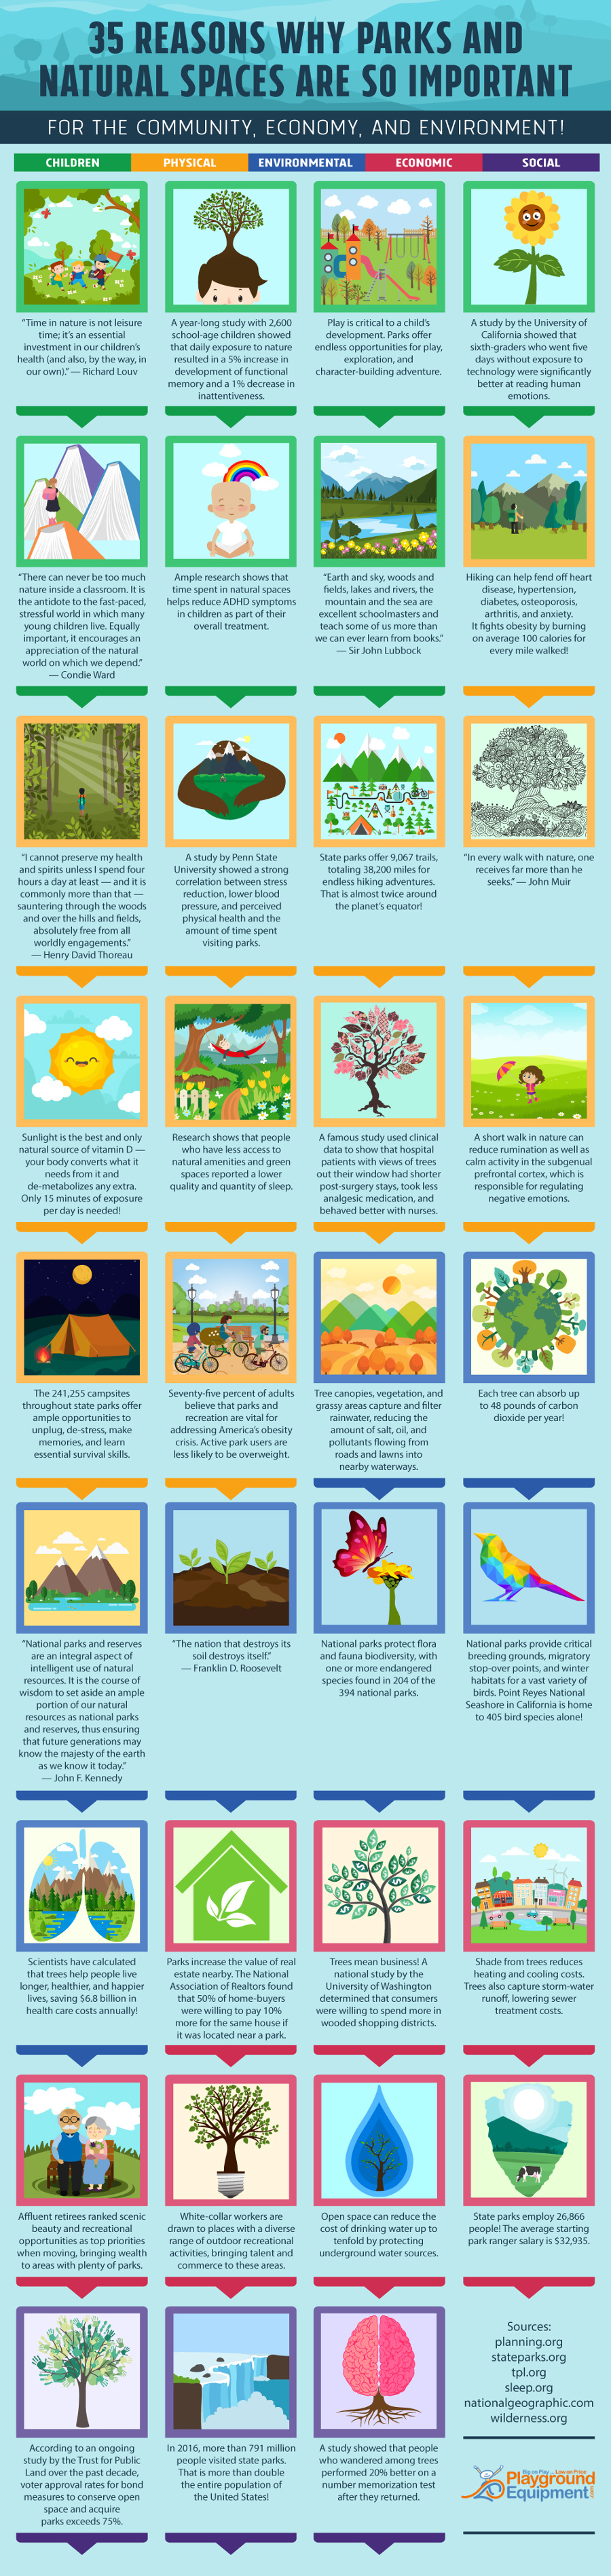 Parks and Natural Spaces are an Invaluable Gift: 35 Reasons Why - Infographic